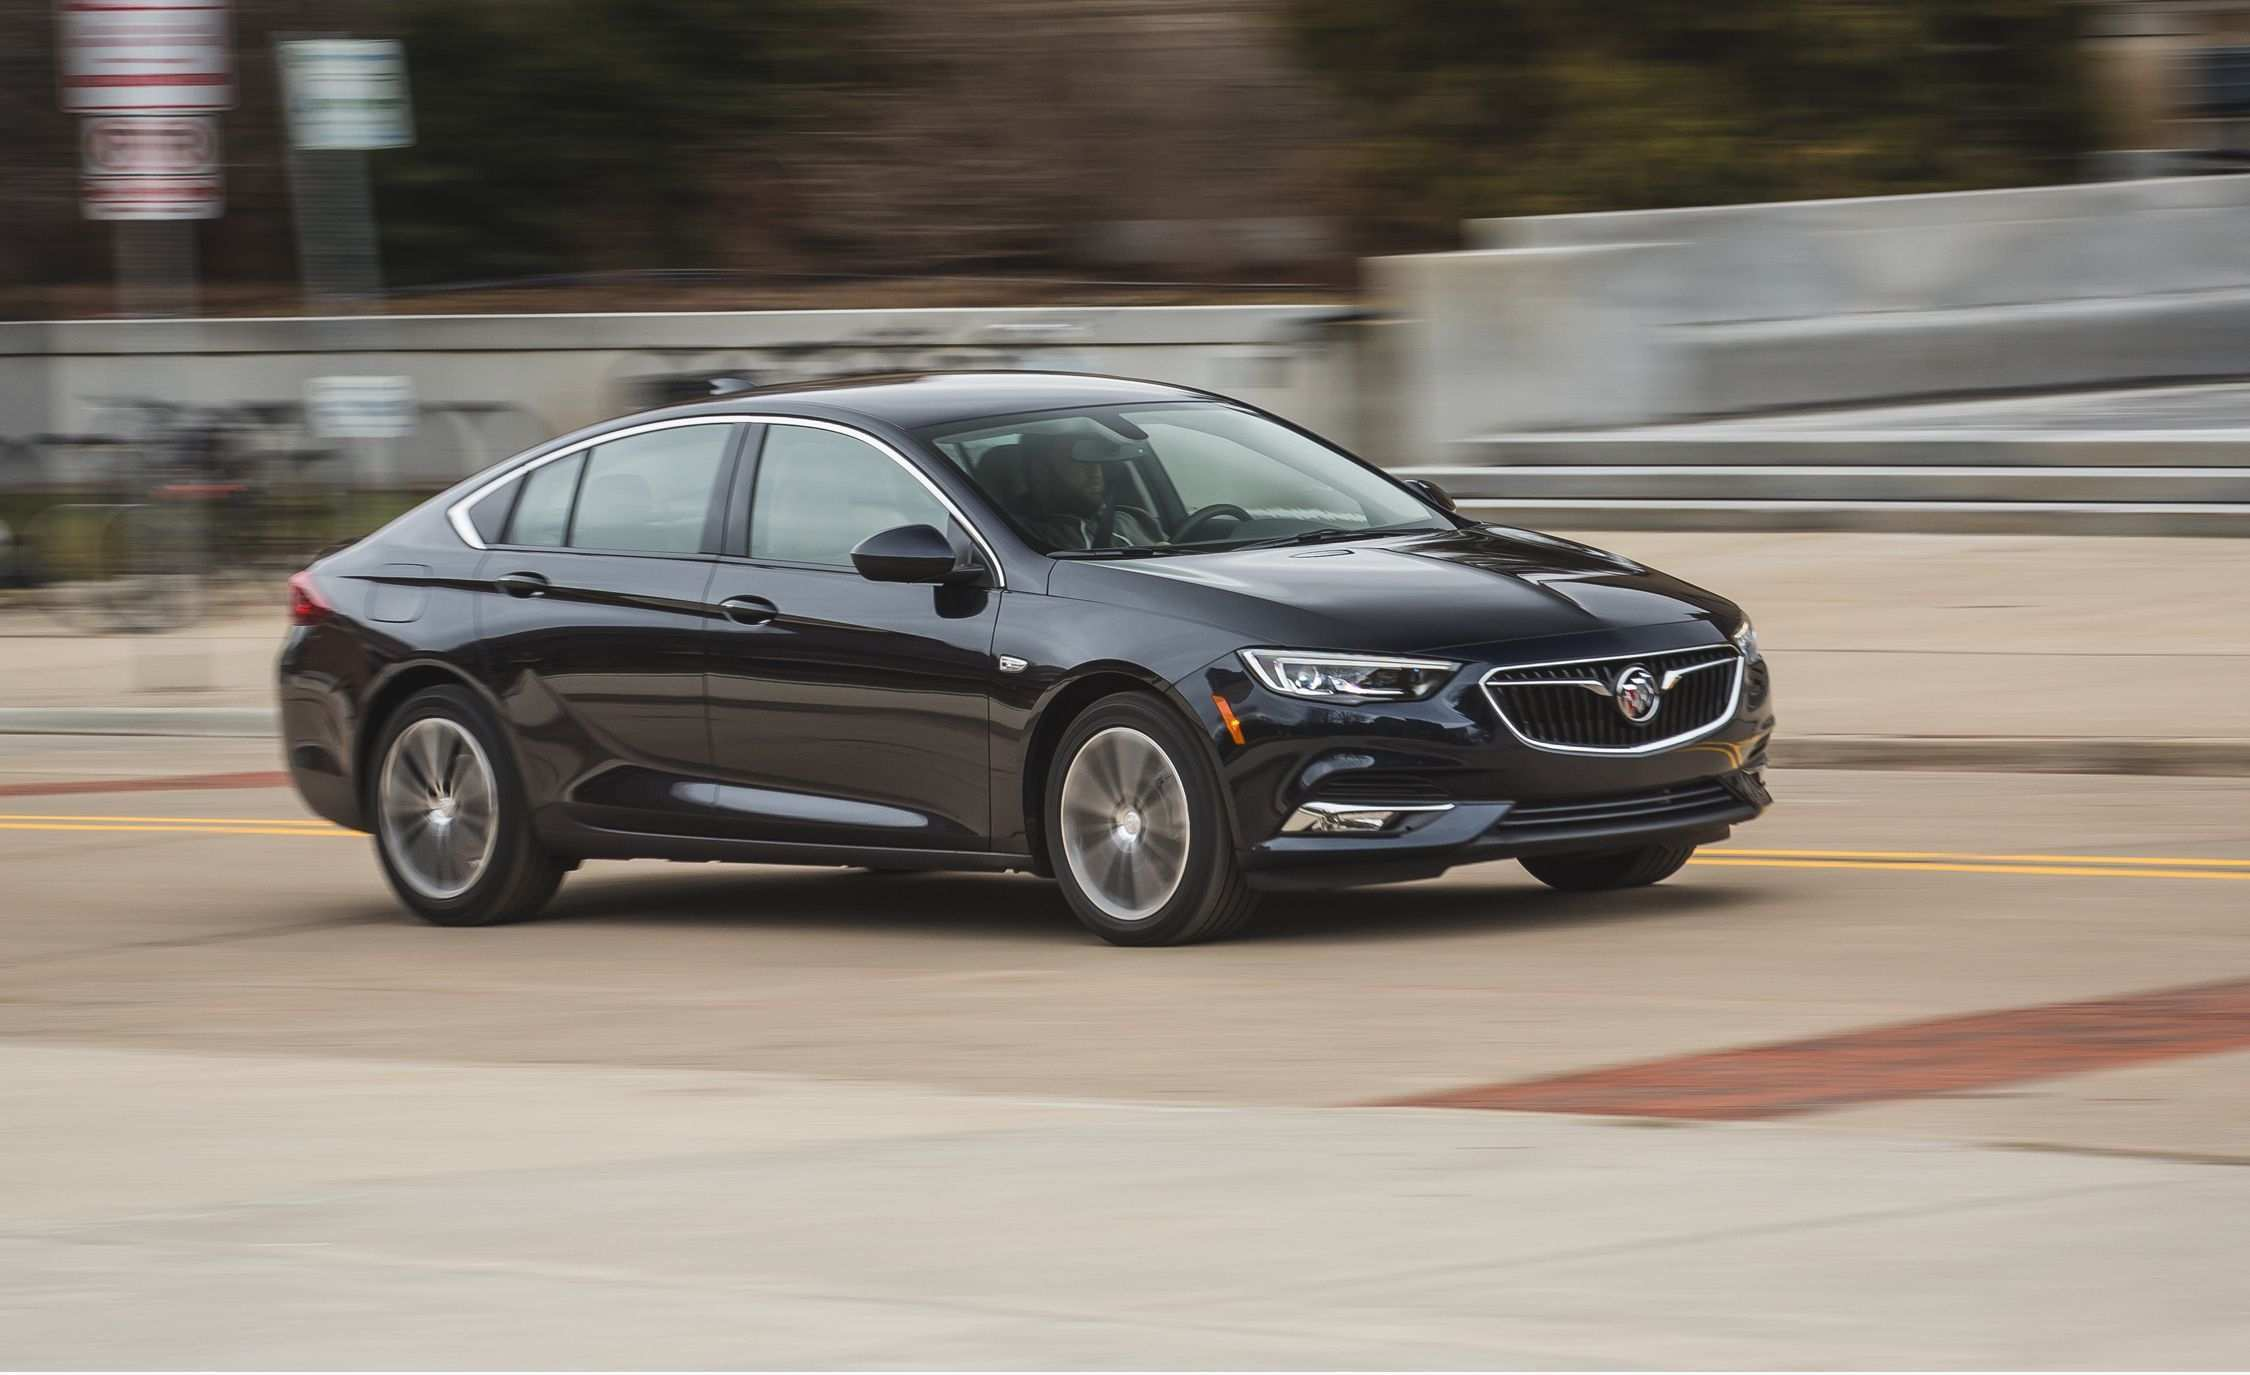 49 Gallery of Buick To Add Regal Sportback Avenir For 2019 Concept Redesign And Review Performance for Buick To Add Regal Sportback Avenir For 2019 Concept Redesign And Review